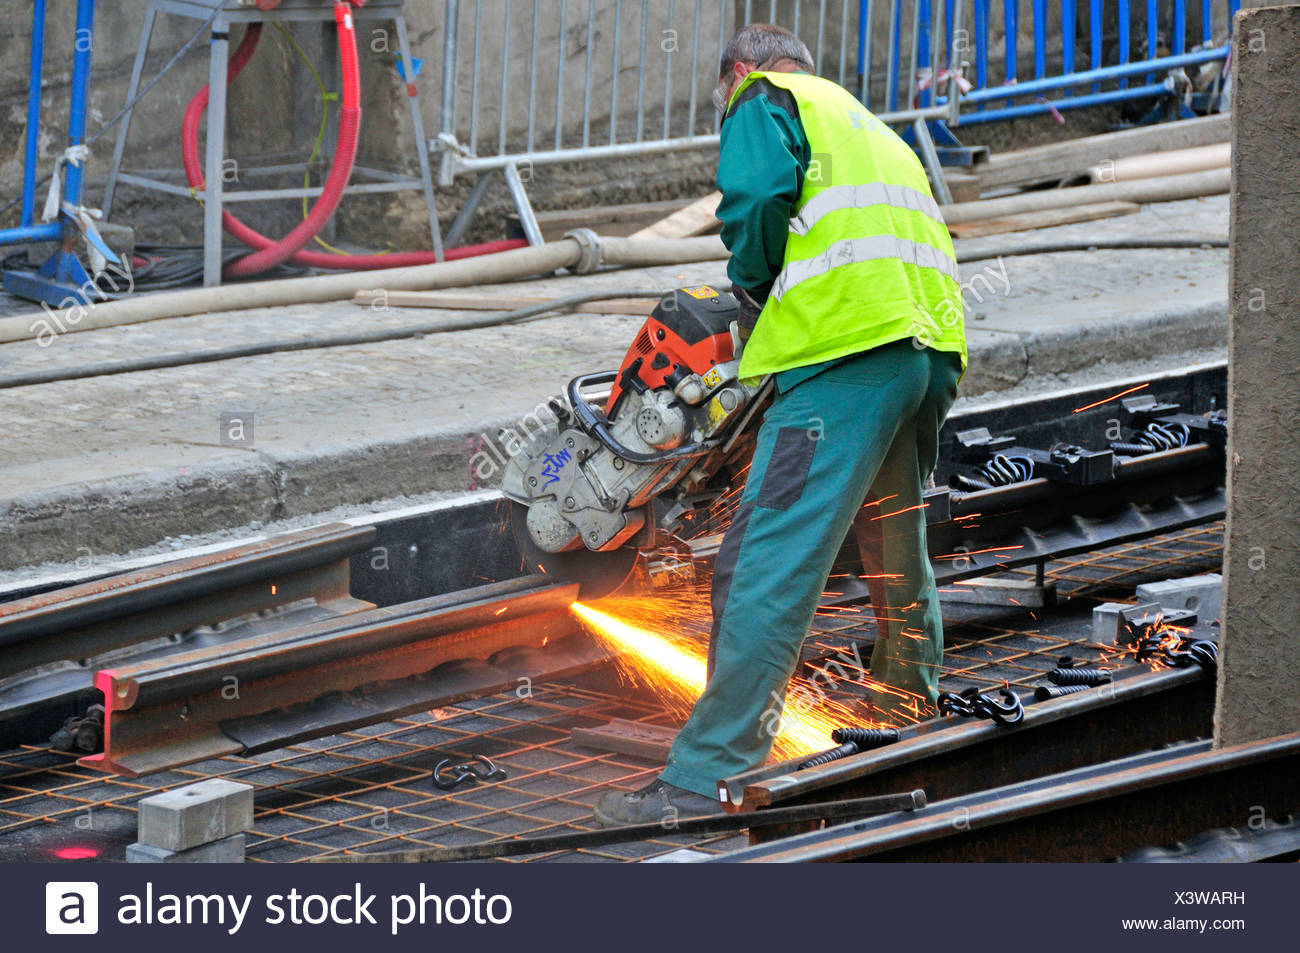 Worker with angle grinder cutting tram rails, Prague, Czech Republic, Europe, OeffentlicherGrund - Stock Image